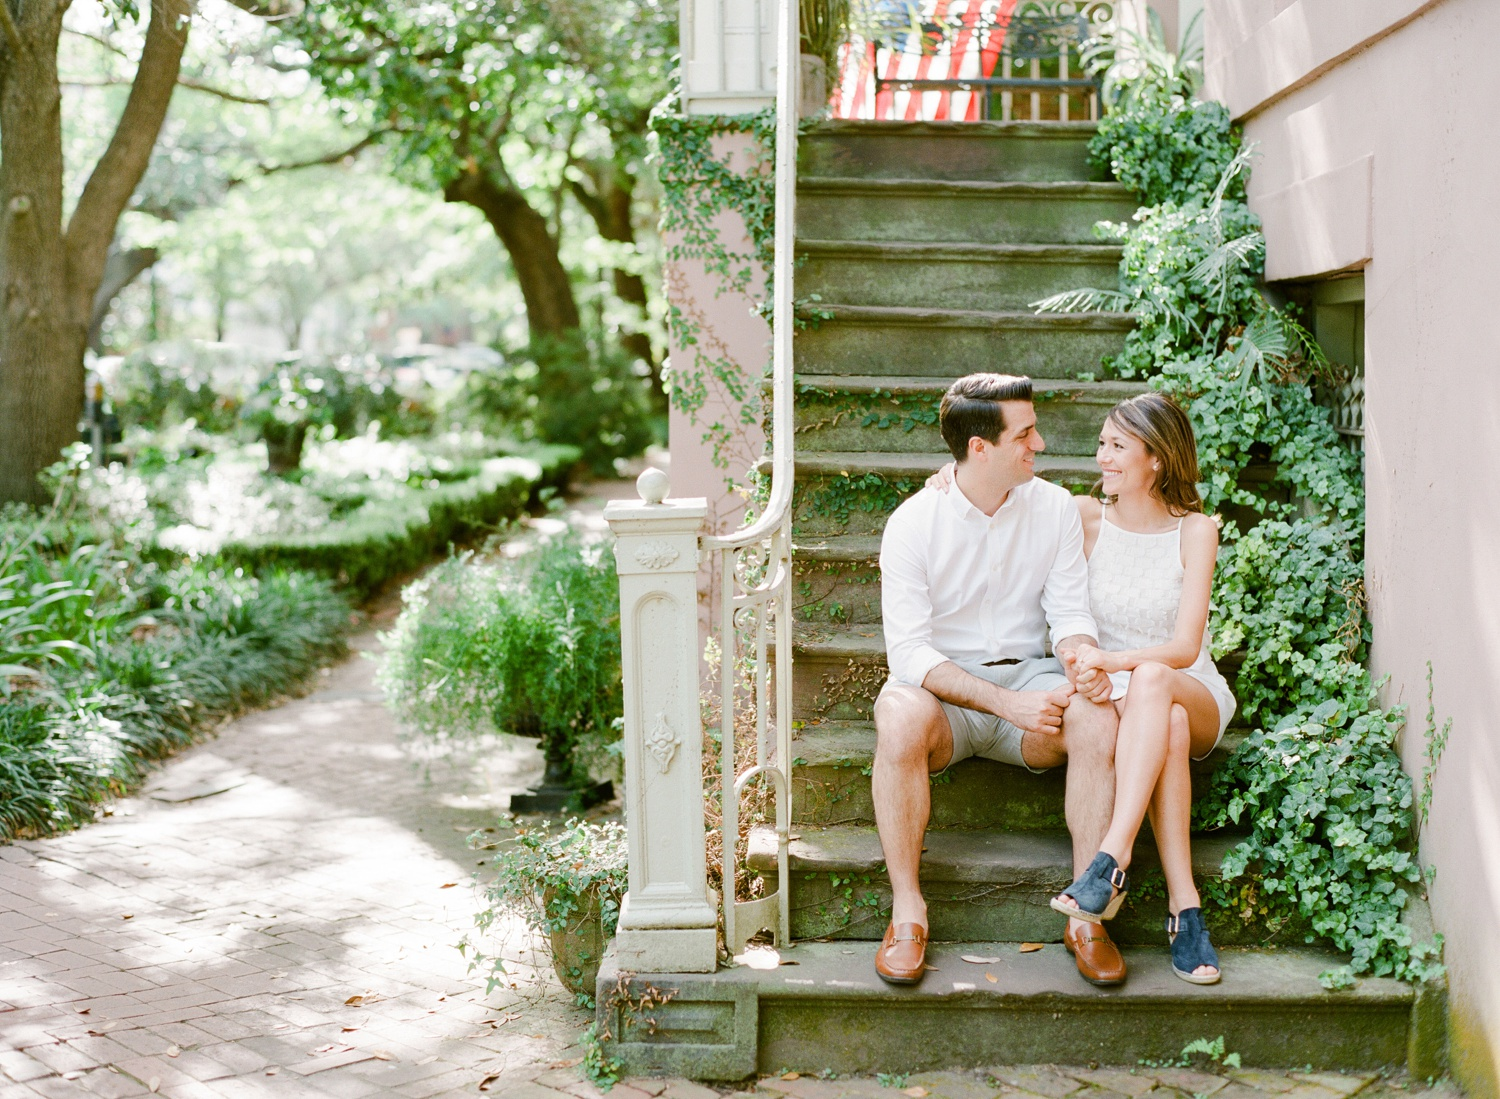 Downtown-Savannah-Georgia-Engagement-Session-By-The-Happy-Bloom_0096.jpg